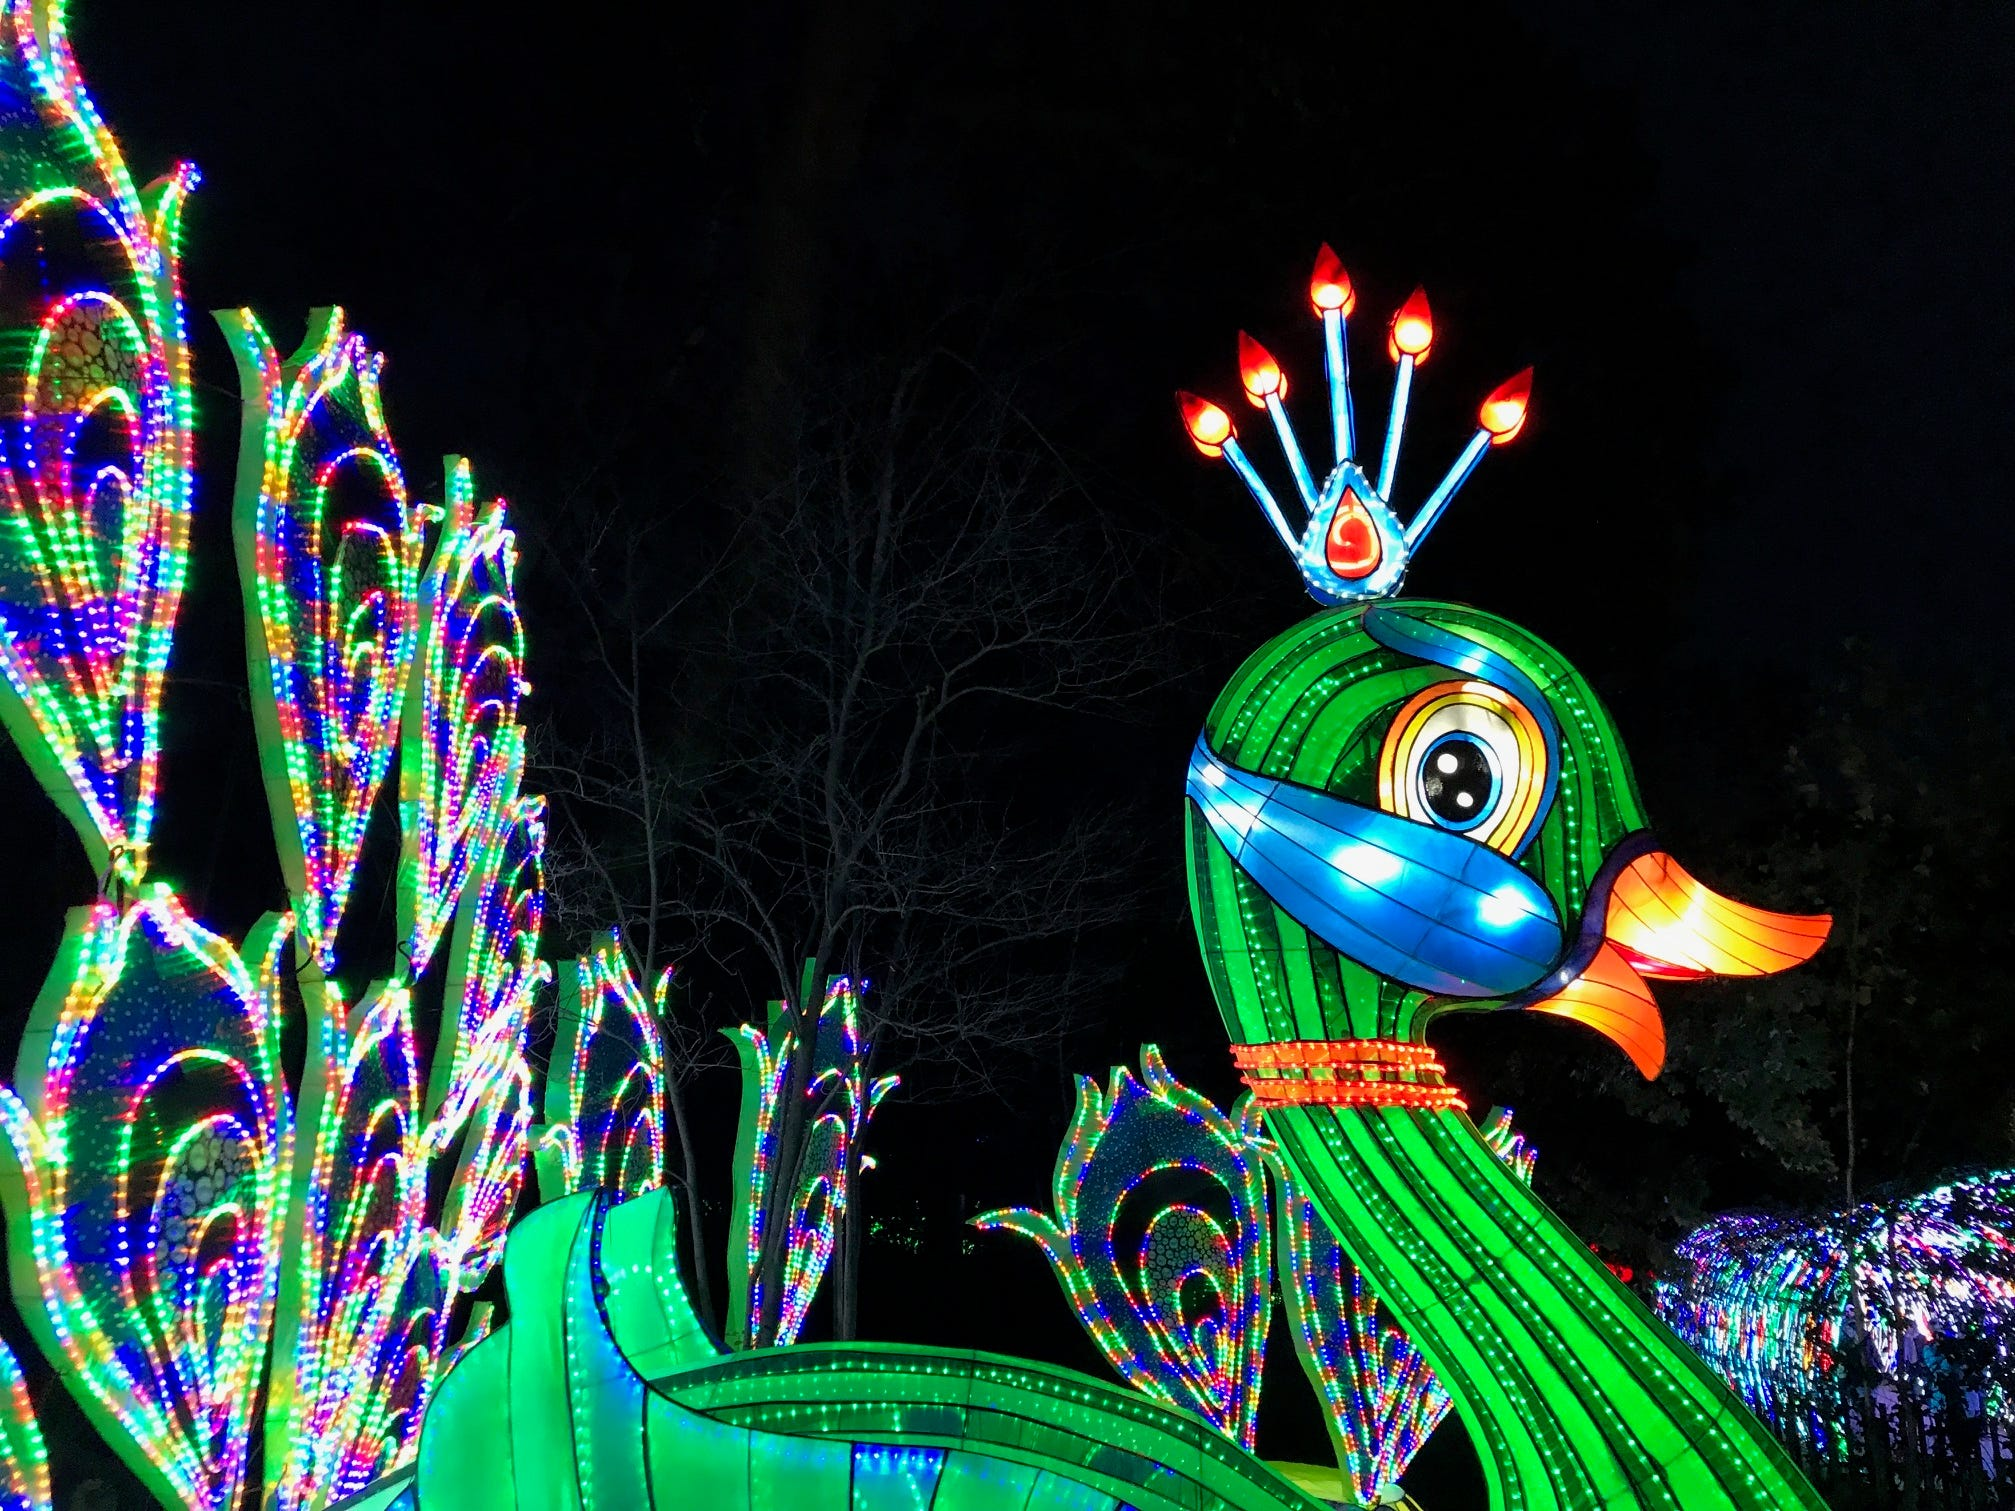 The peacock is filled with color at the China Lights lantern festival on the grounds of the Boerner Botanical Gardens.